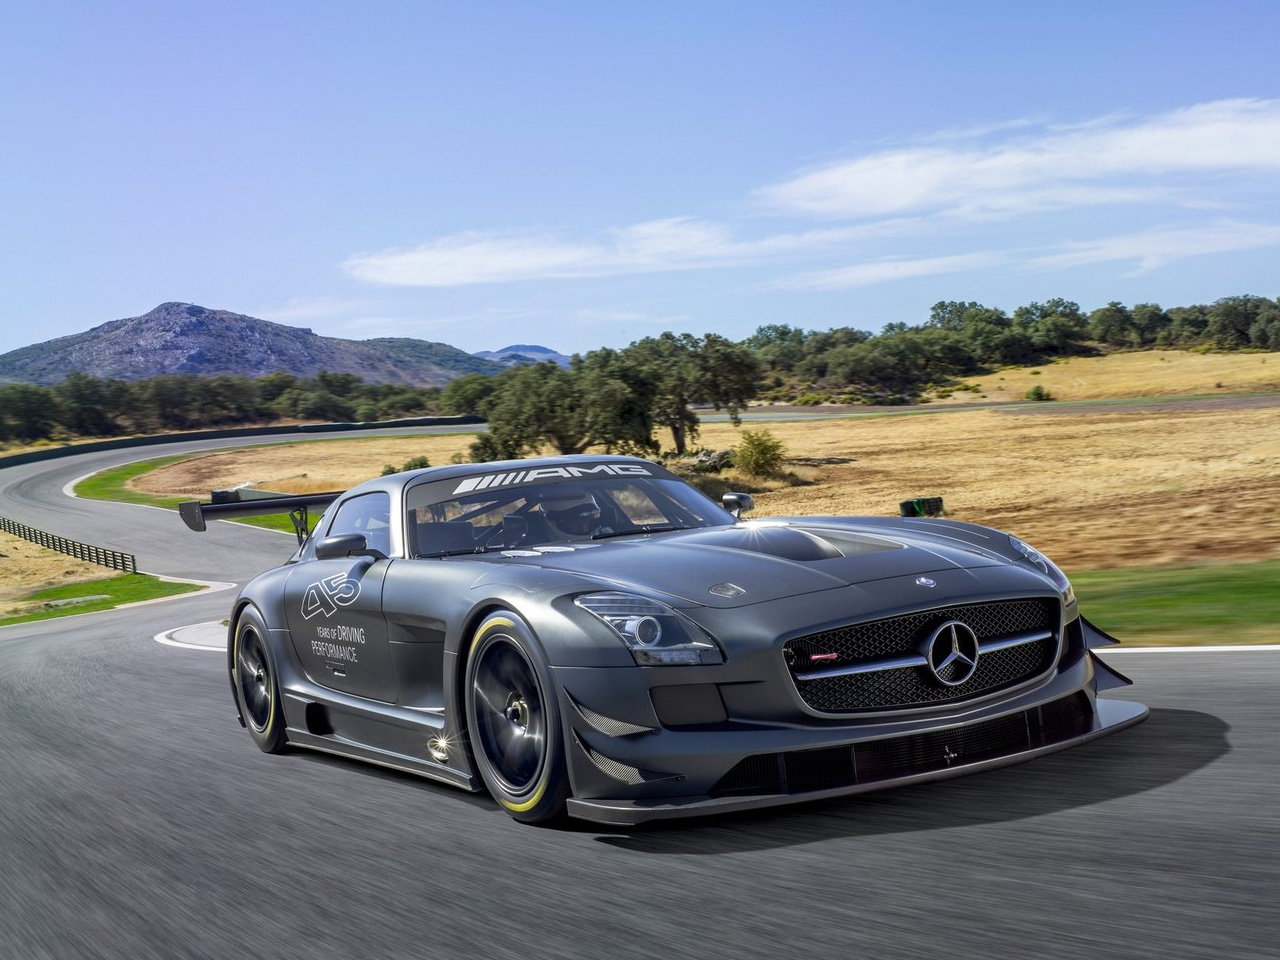 2013 mercedes benz sls amg gt3 45th anniversary cars info. Black Bedroom Furniture Sets. Home Design Ideas